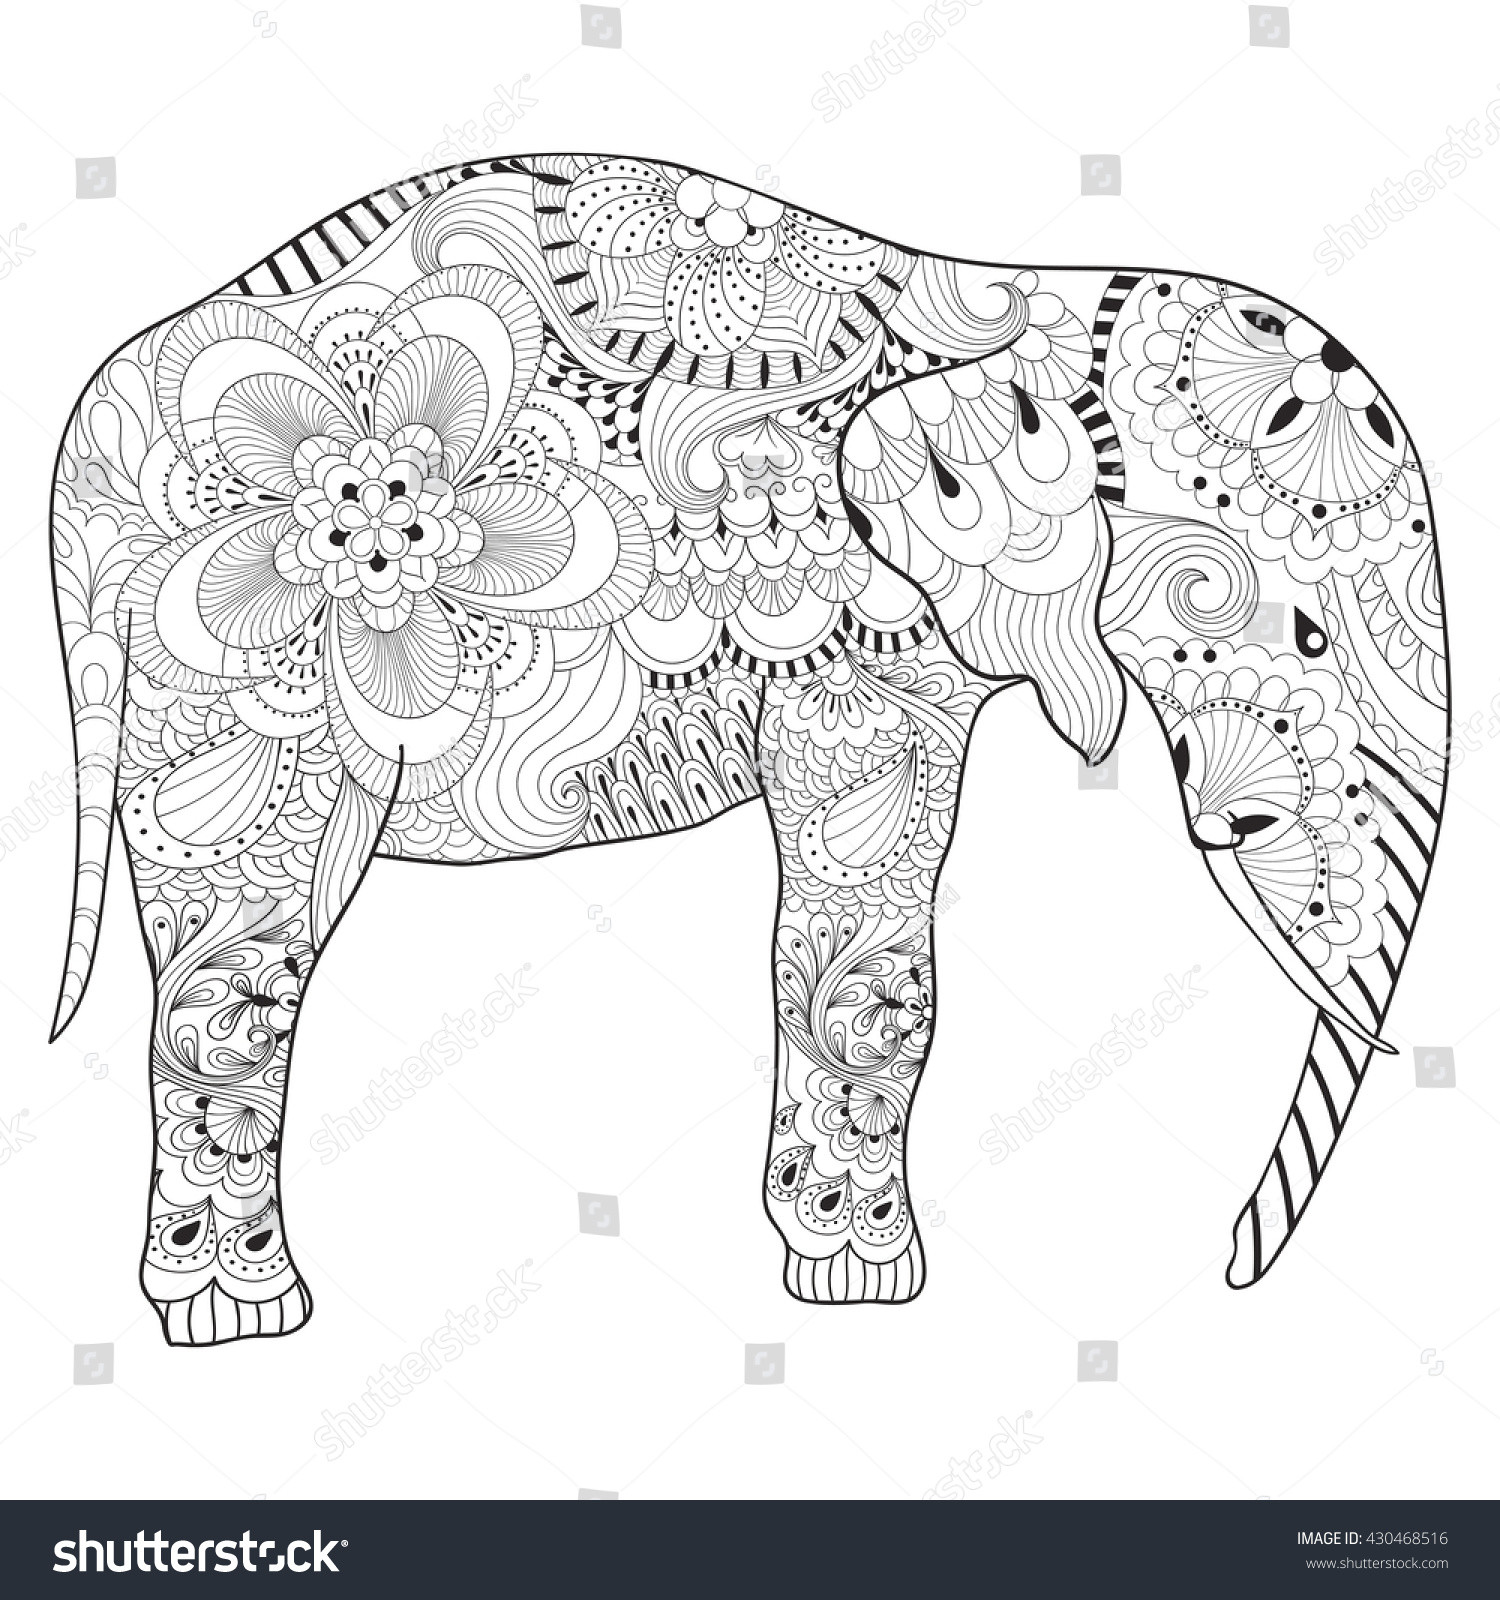 Hand Drawn Coloring Pages  Hand Drawn Zentangle Elephant Mandala Adult Stock Vector